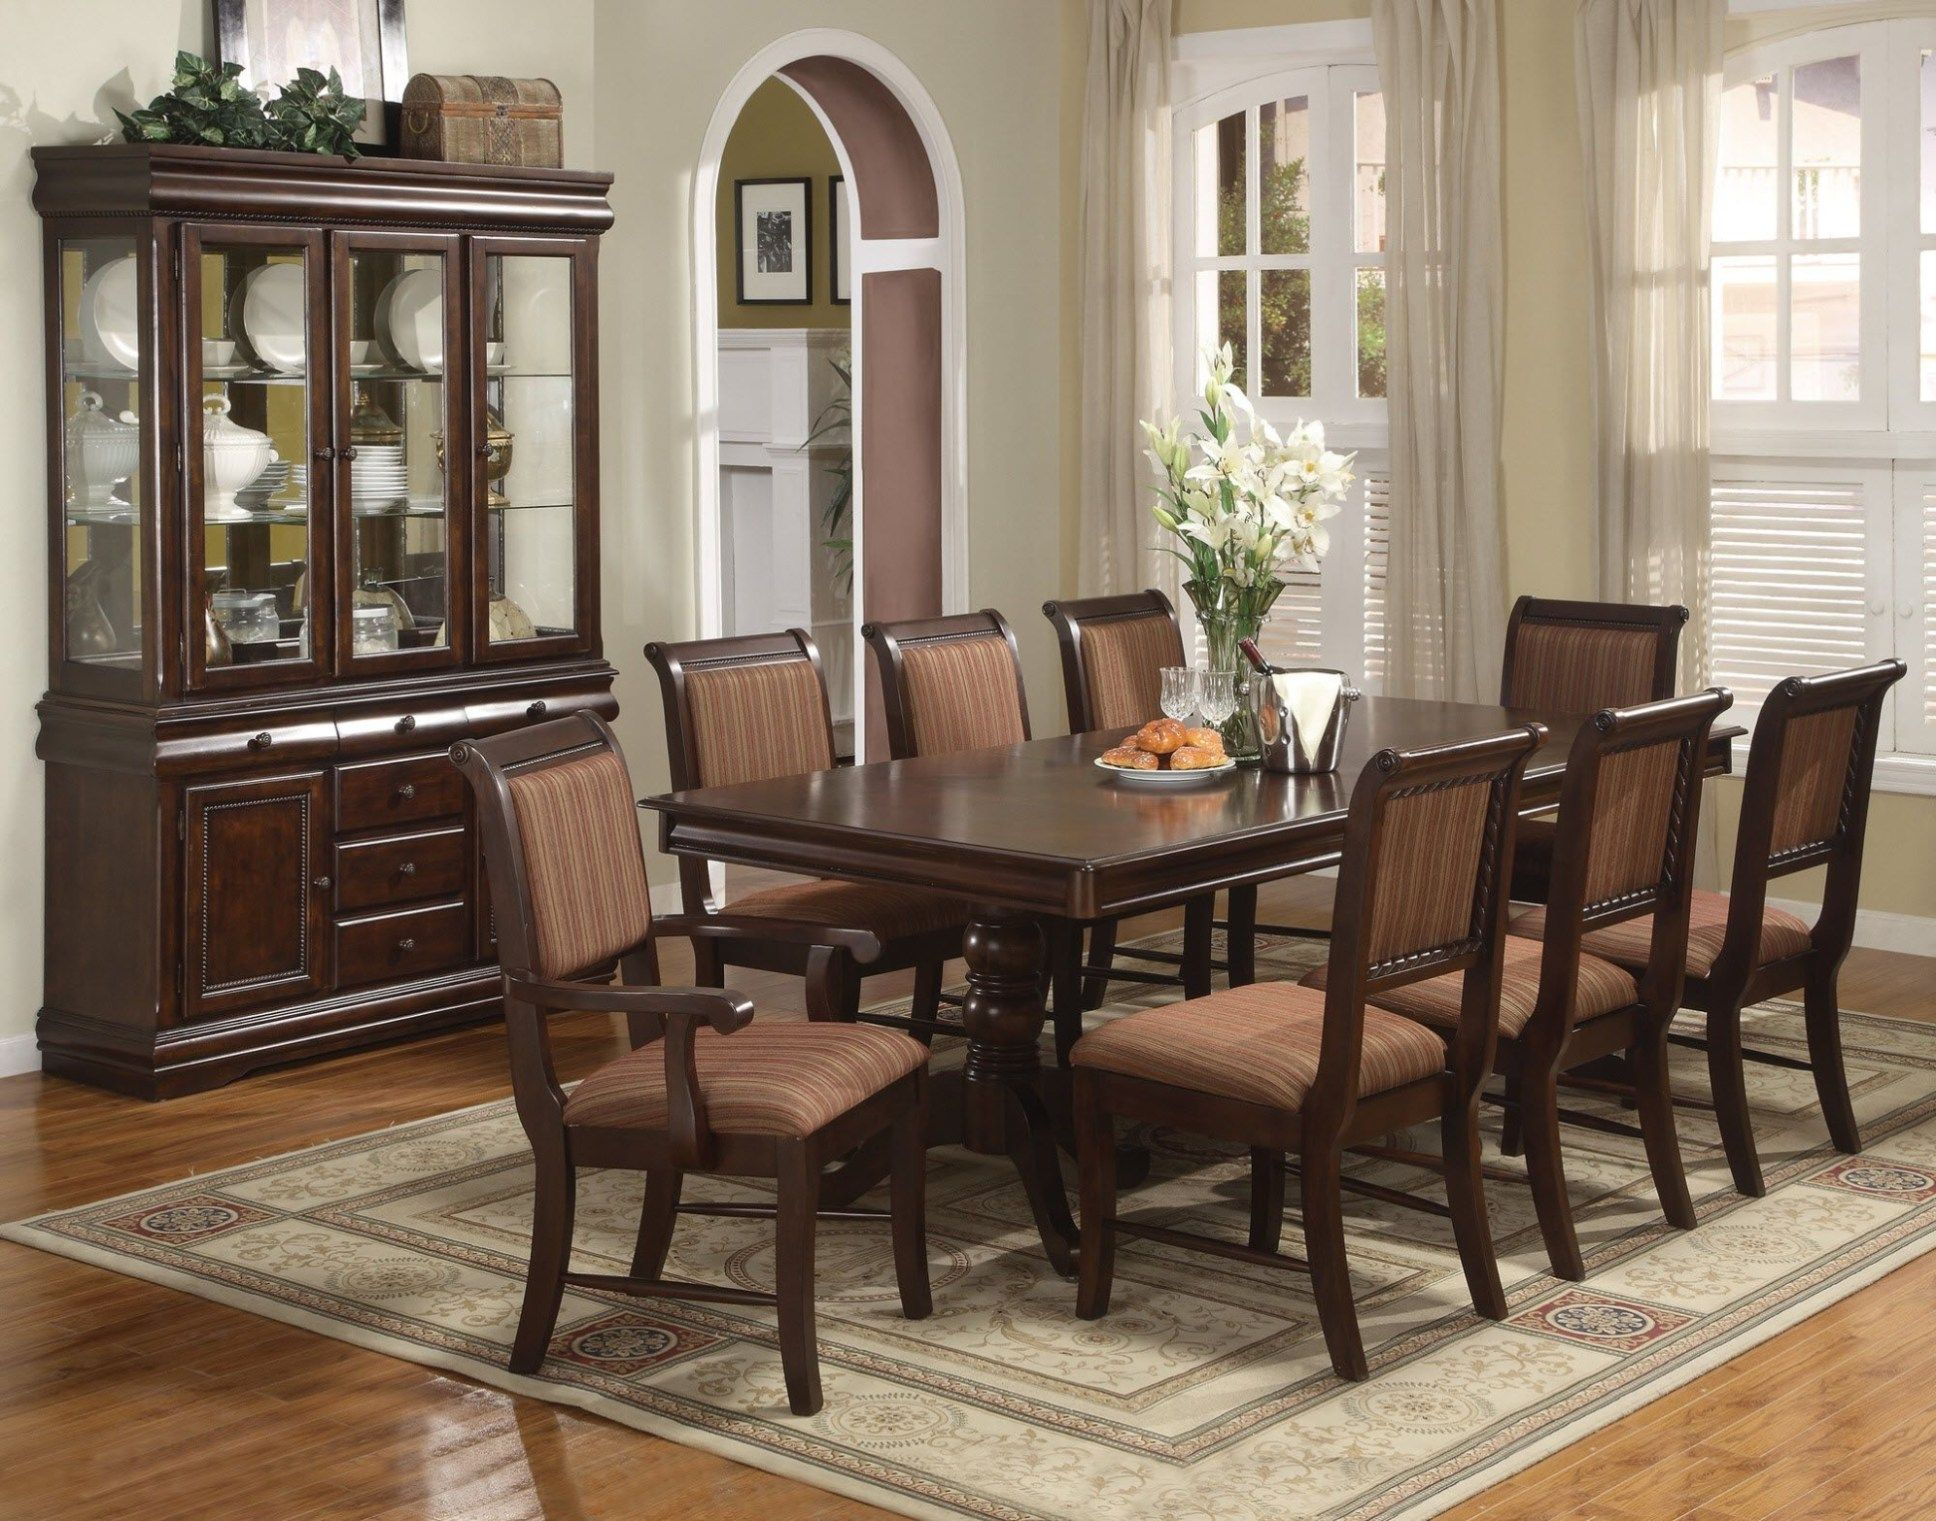 34 Best Formal Dining Room Sets For 8 Dining Room Furniture Sets Formal Dining Room Furniture Sets Formal Dining Room Sets